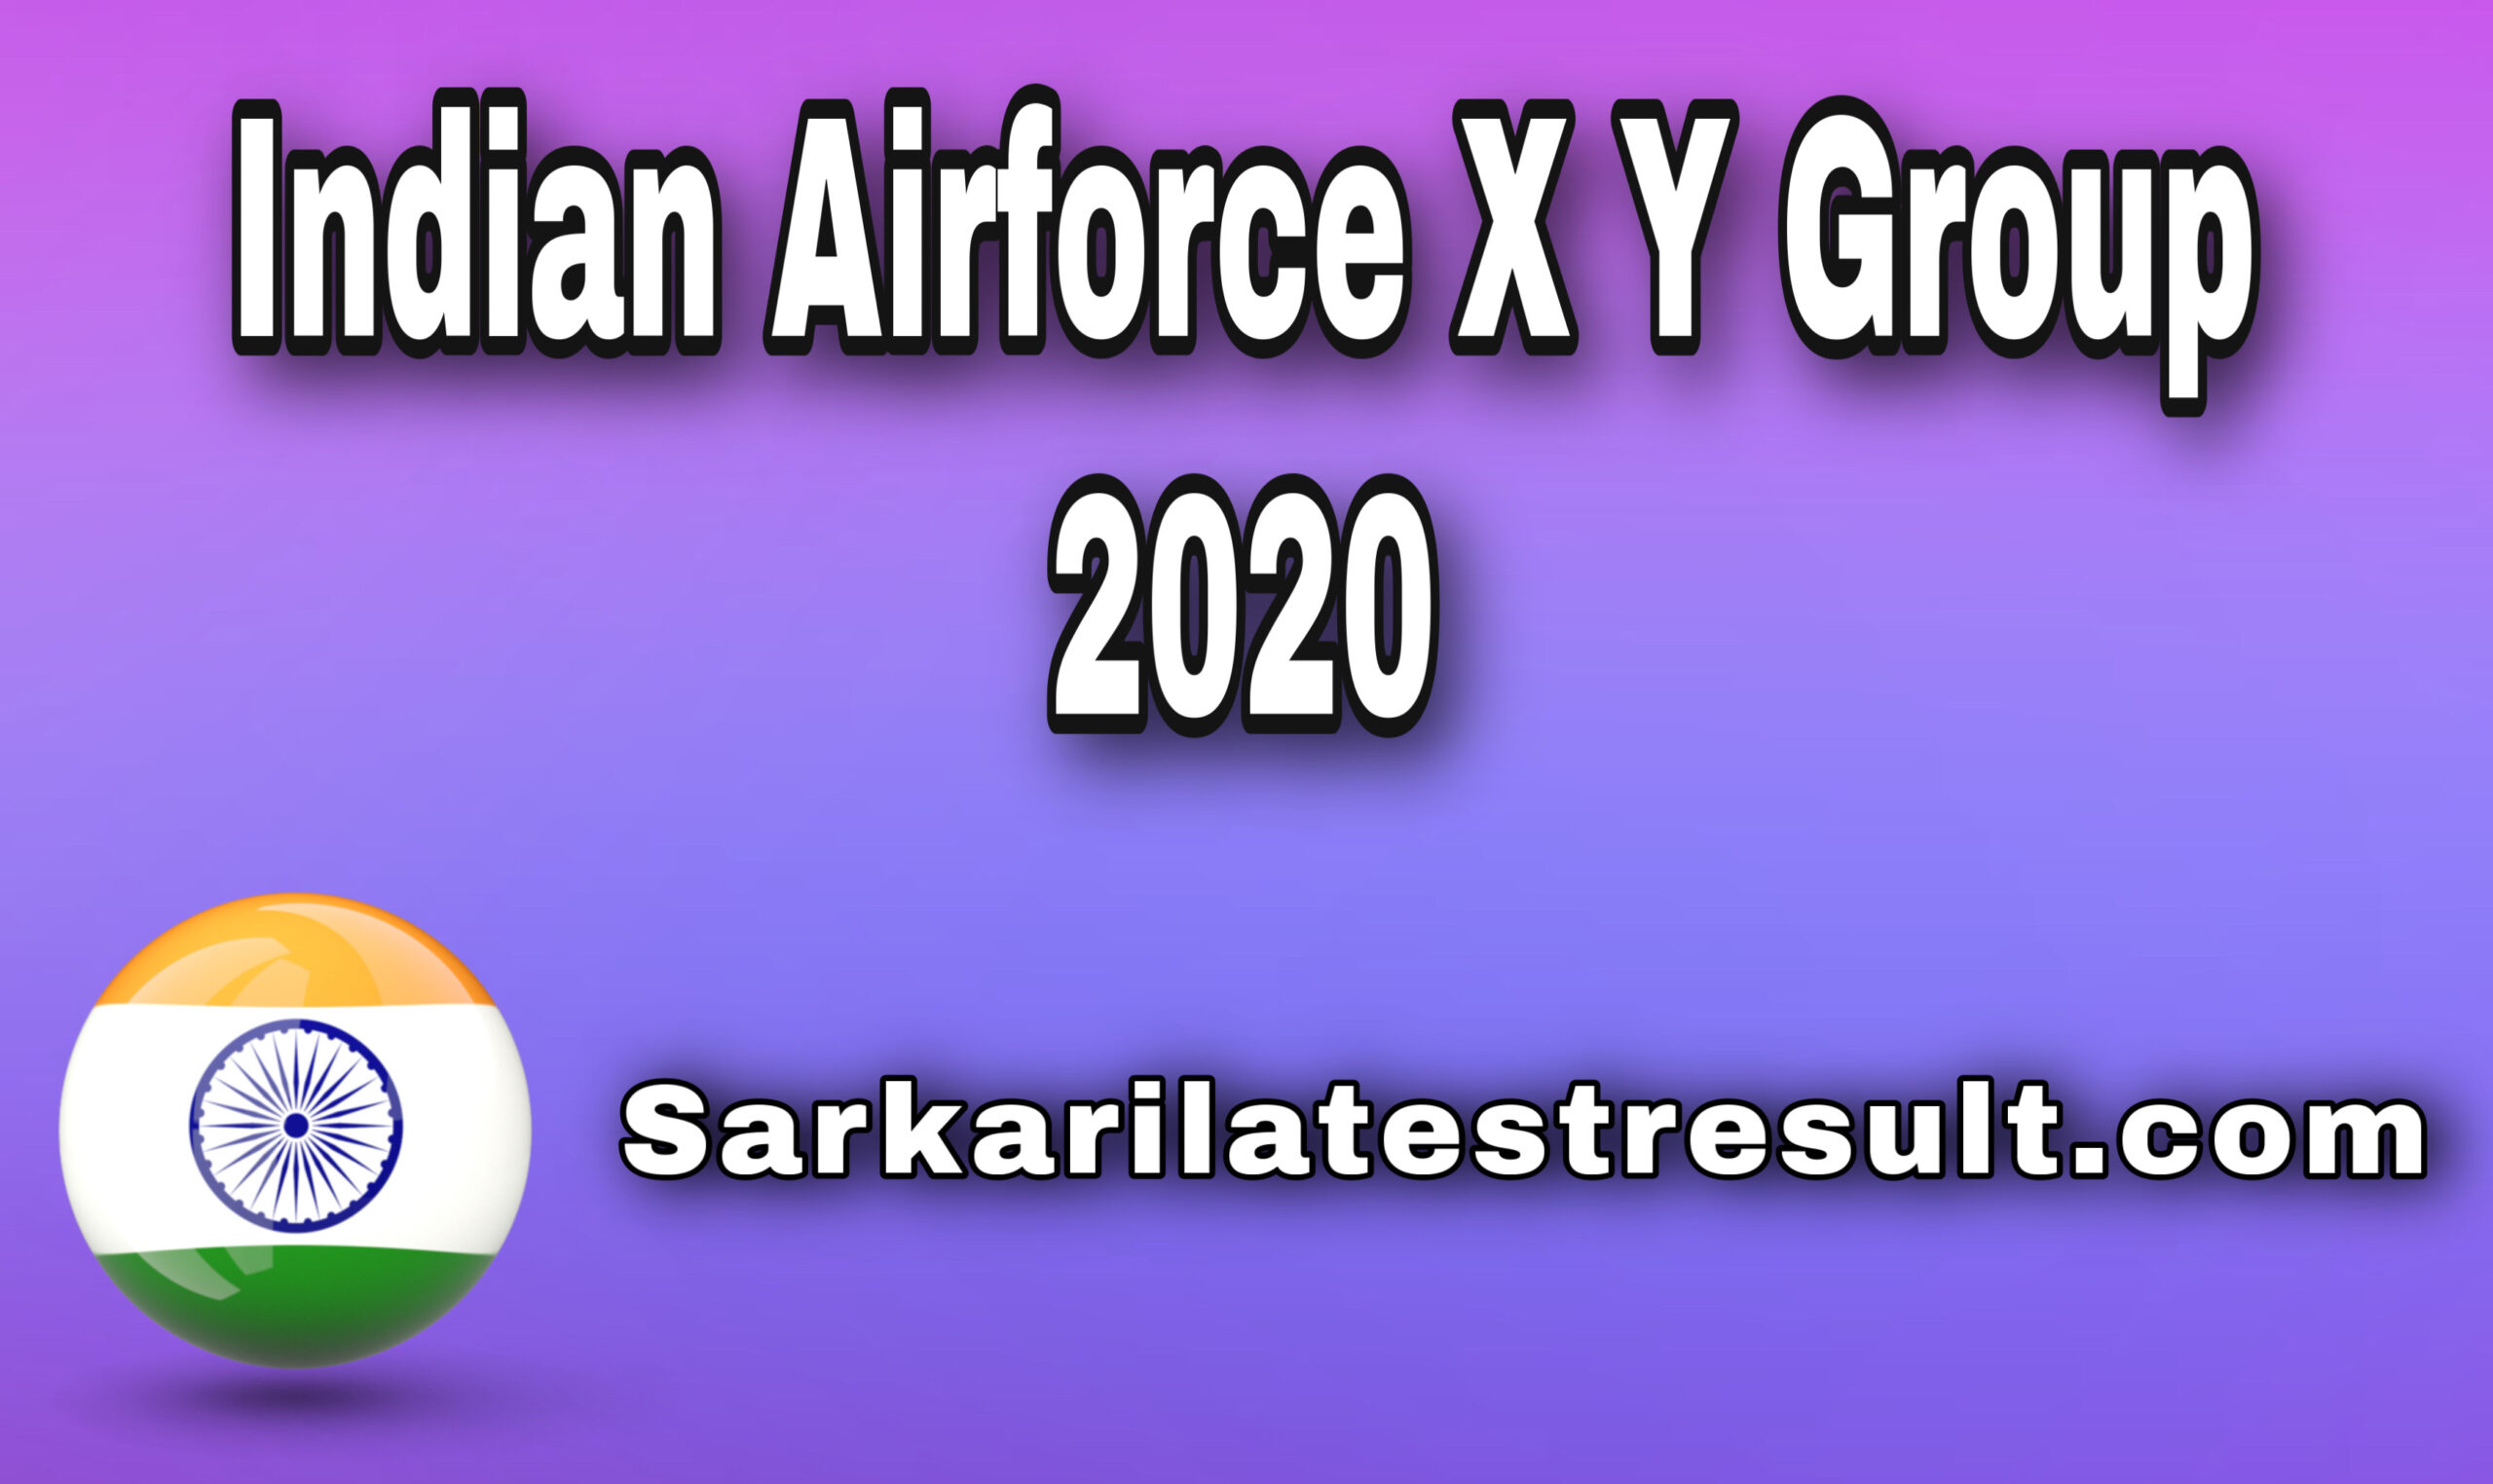 Indian Airforce X Y Group Admit Card 2020